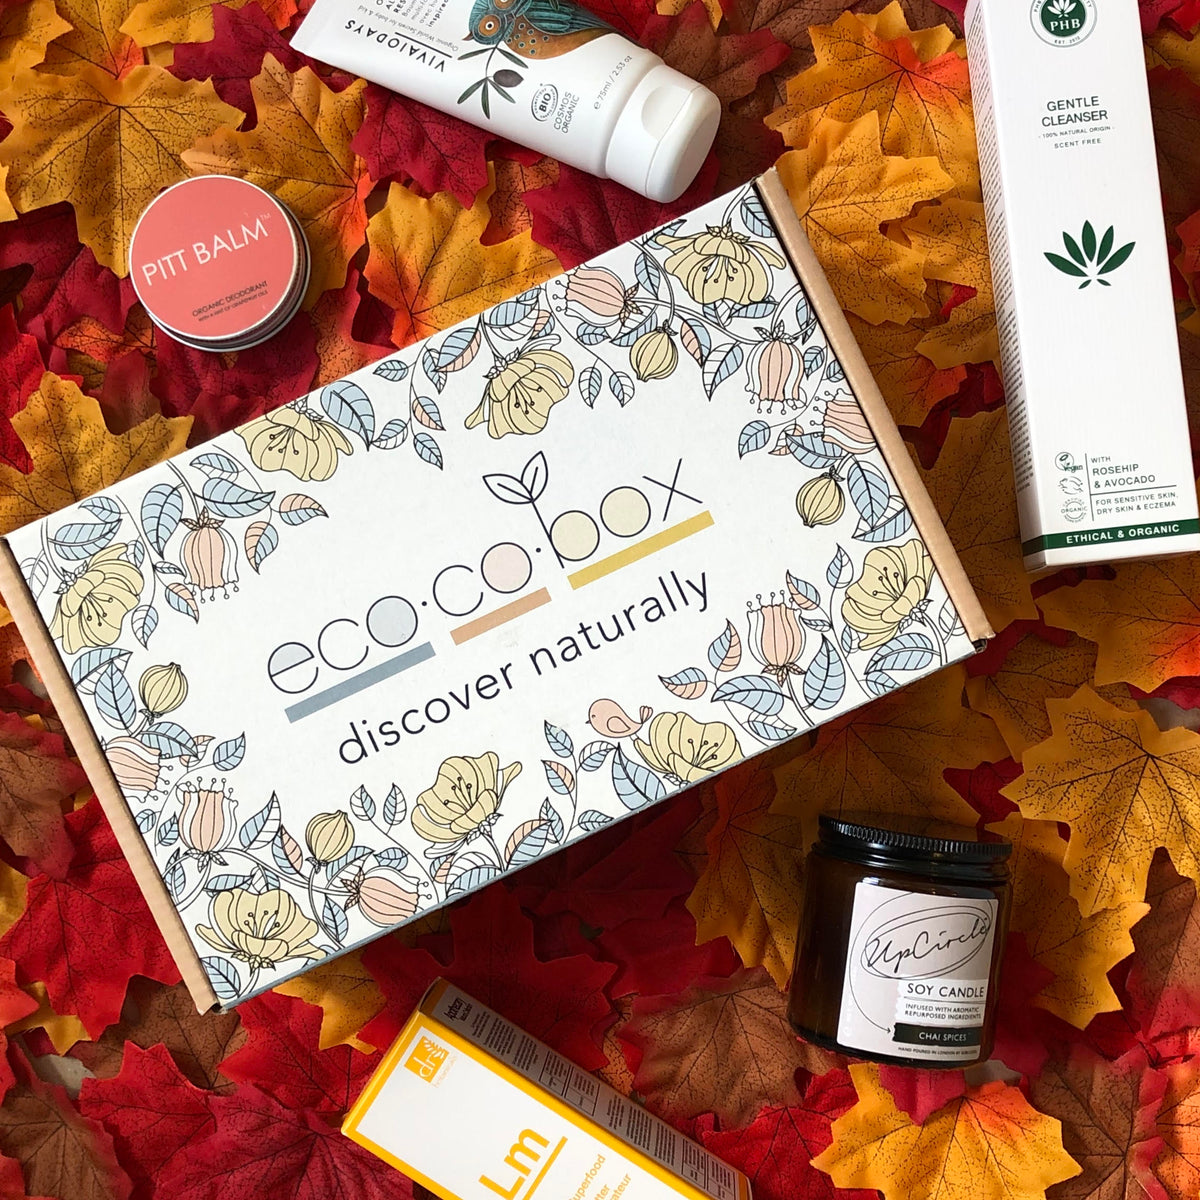 Flatlay of the Autumn/Winter ecocobox subscription box for mum showing the ethical products for mum and baby. This also forms part of our gift subscription for mums and mums-to-be as it is tailored to pregnancy or baby stage.